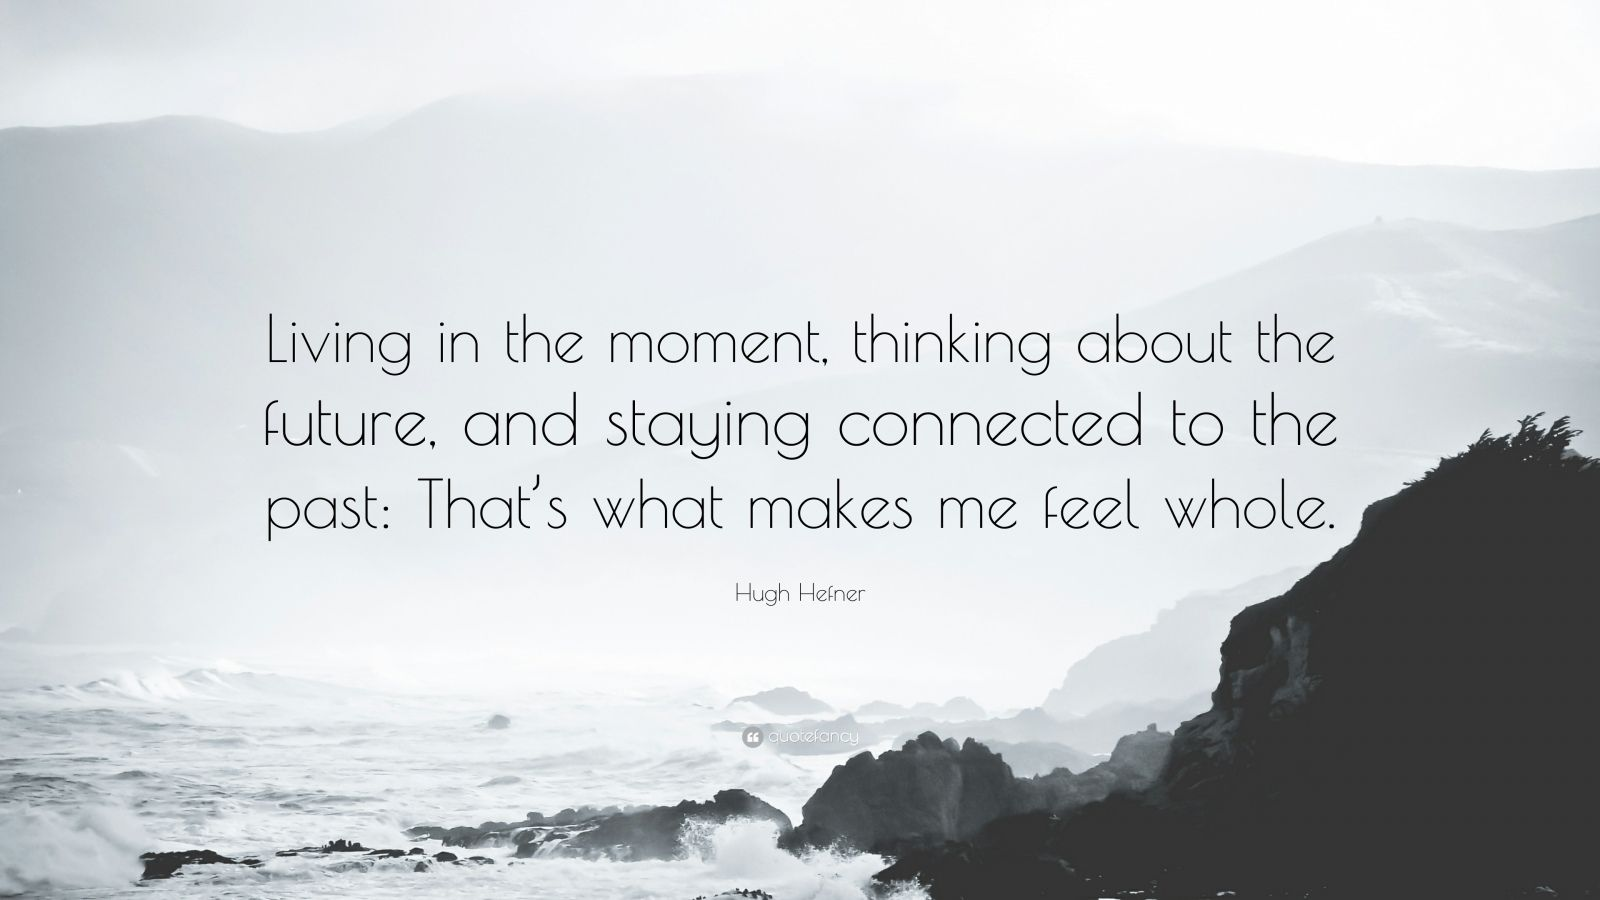 """Hugh Hefner Quote: """"Living in the moment, thinking about the future, and staying connected to the past: That's what makes me feel whole."""""""